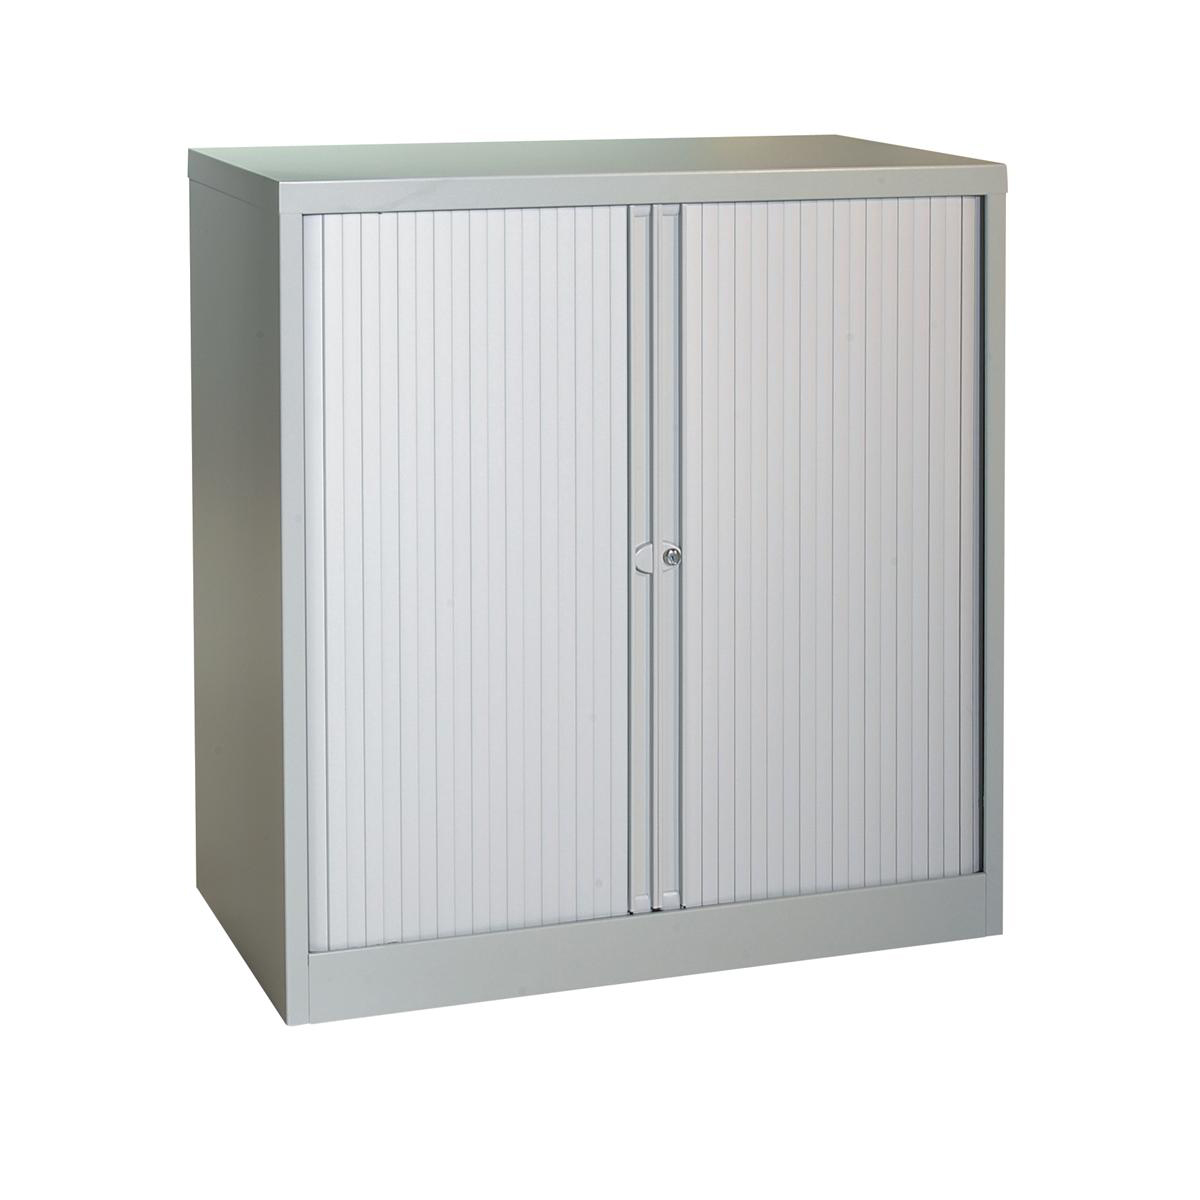 Trexus by Bisley Side Opening Tambour Door Cupboard 1000x470x1000-1015mm Grey/Grey Ref YETB1010.1